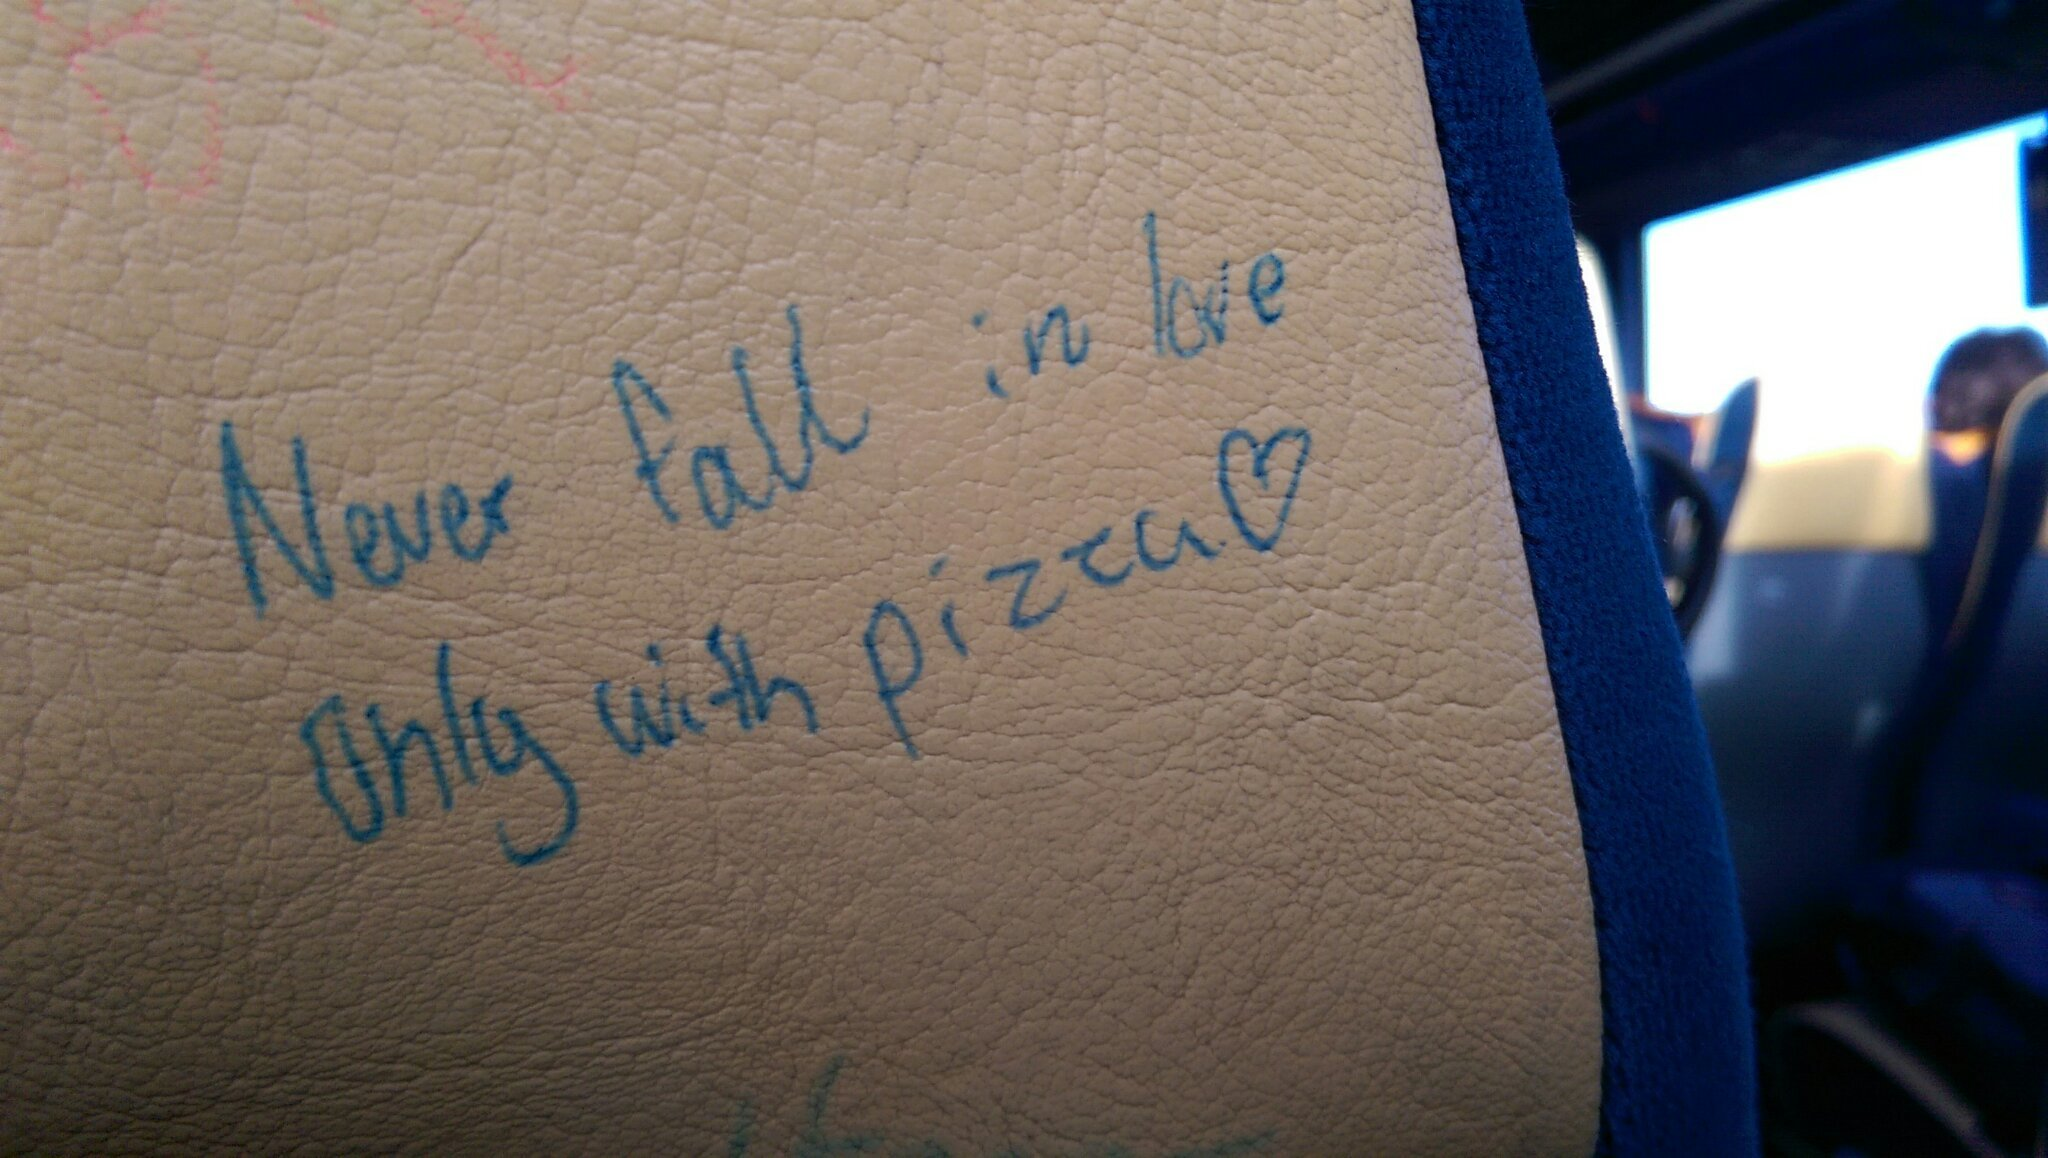 The best advices are found on the back of seats in the bus - meme